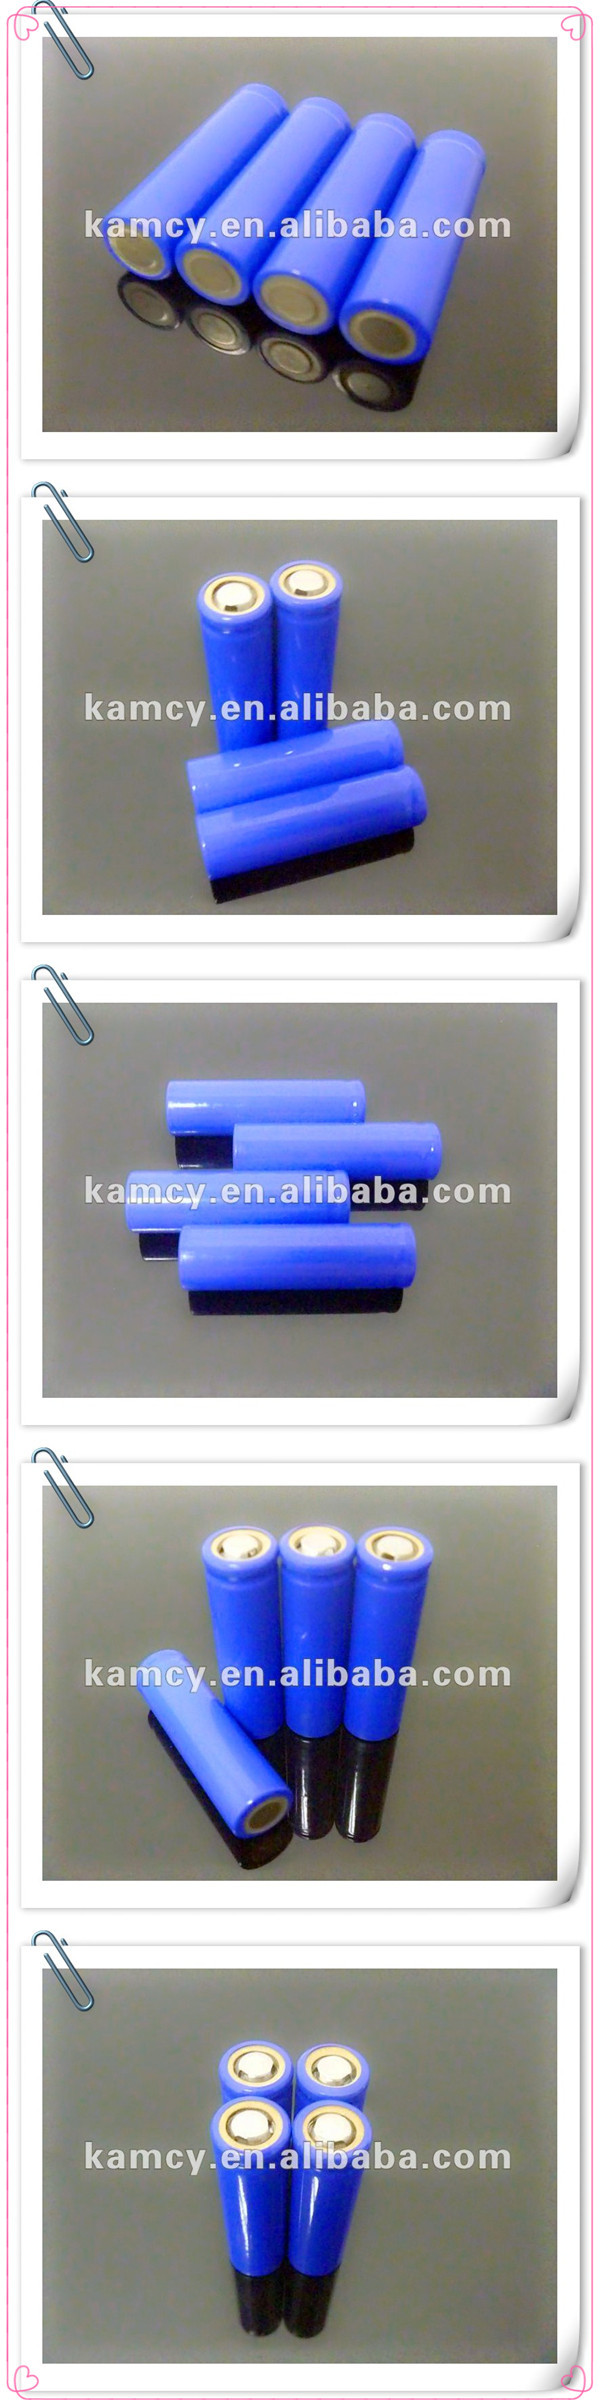 li ion battery cell 14430 li-ion battery